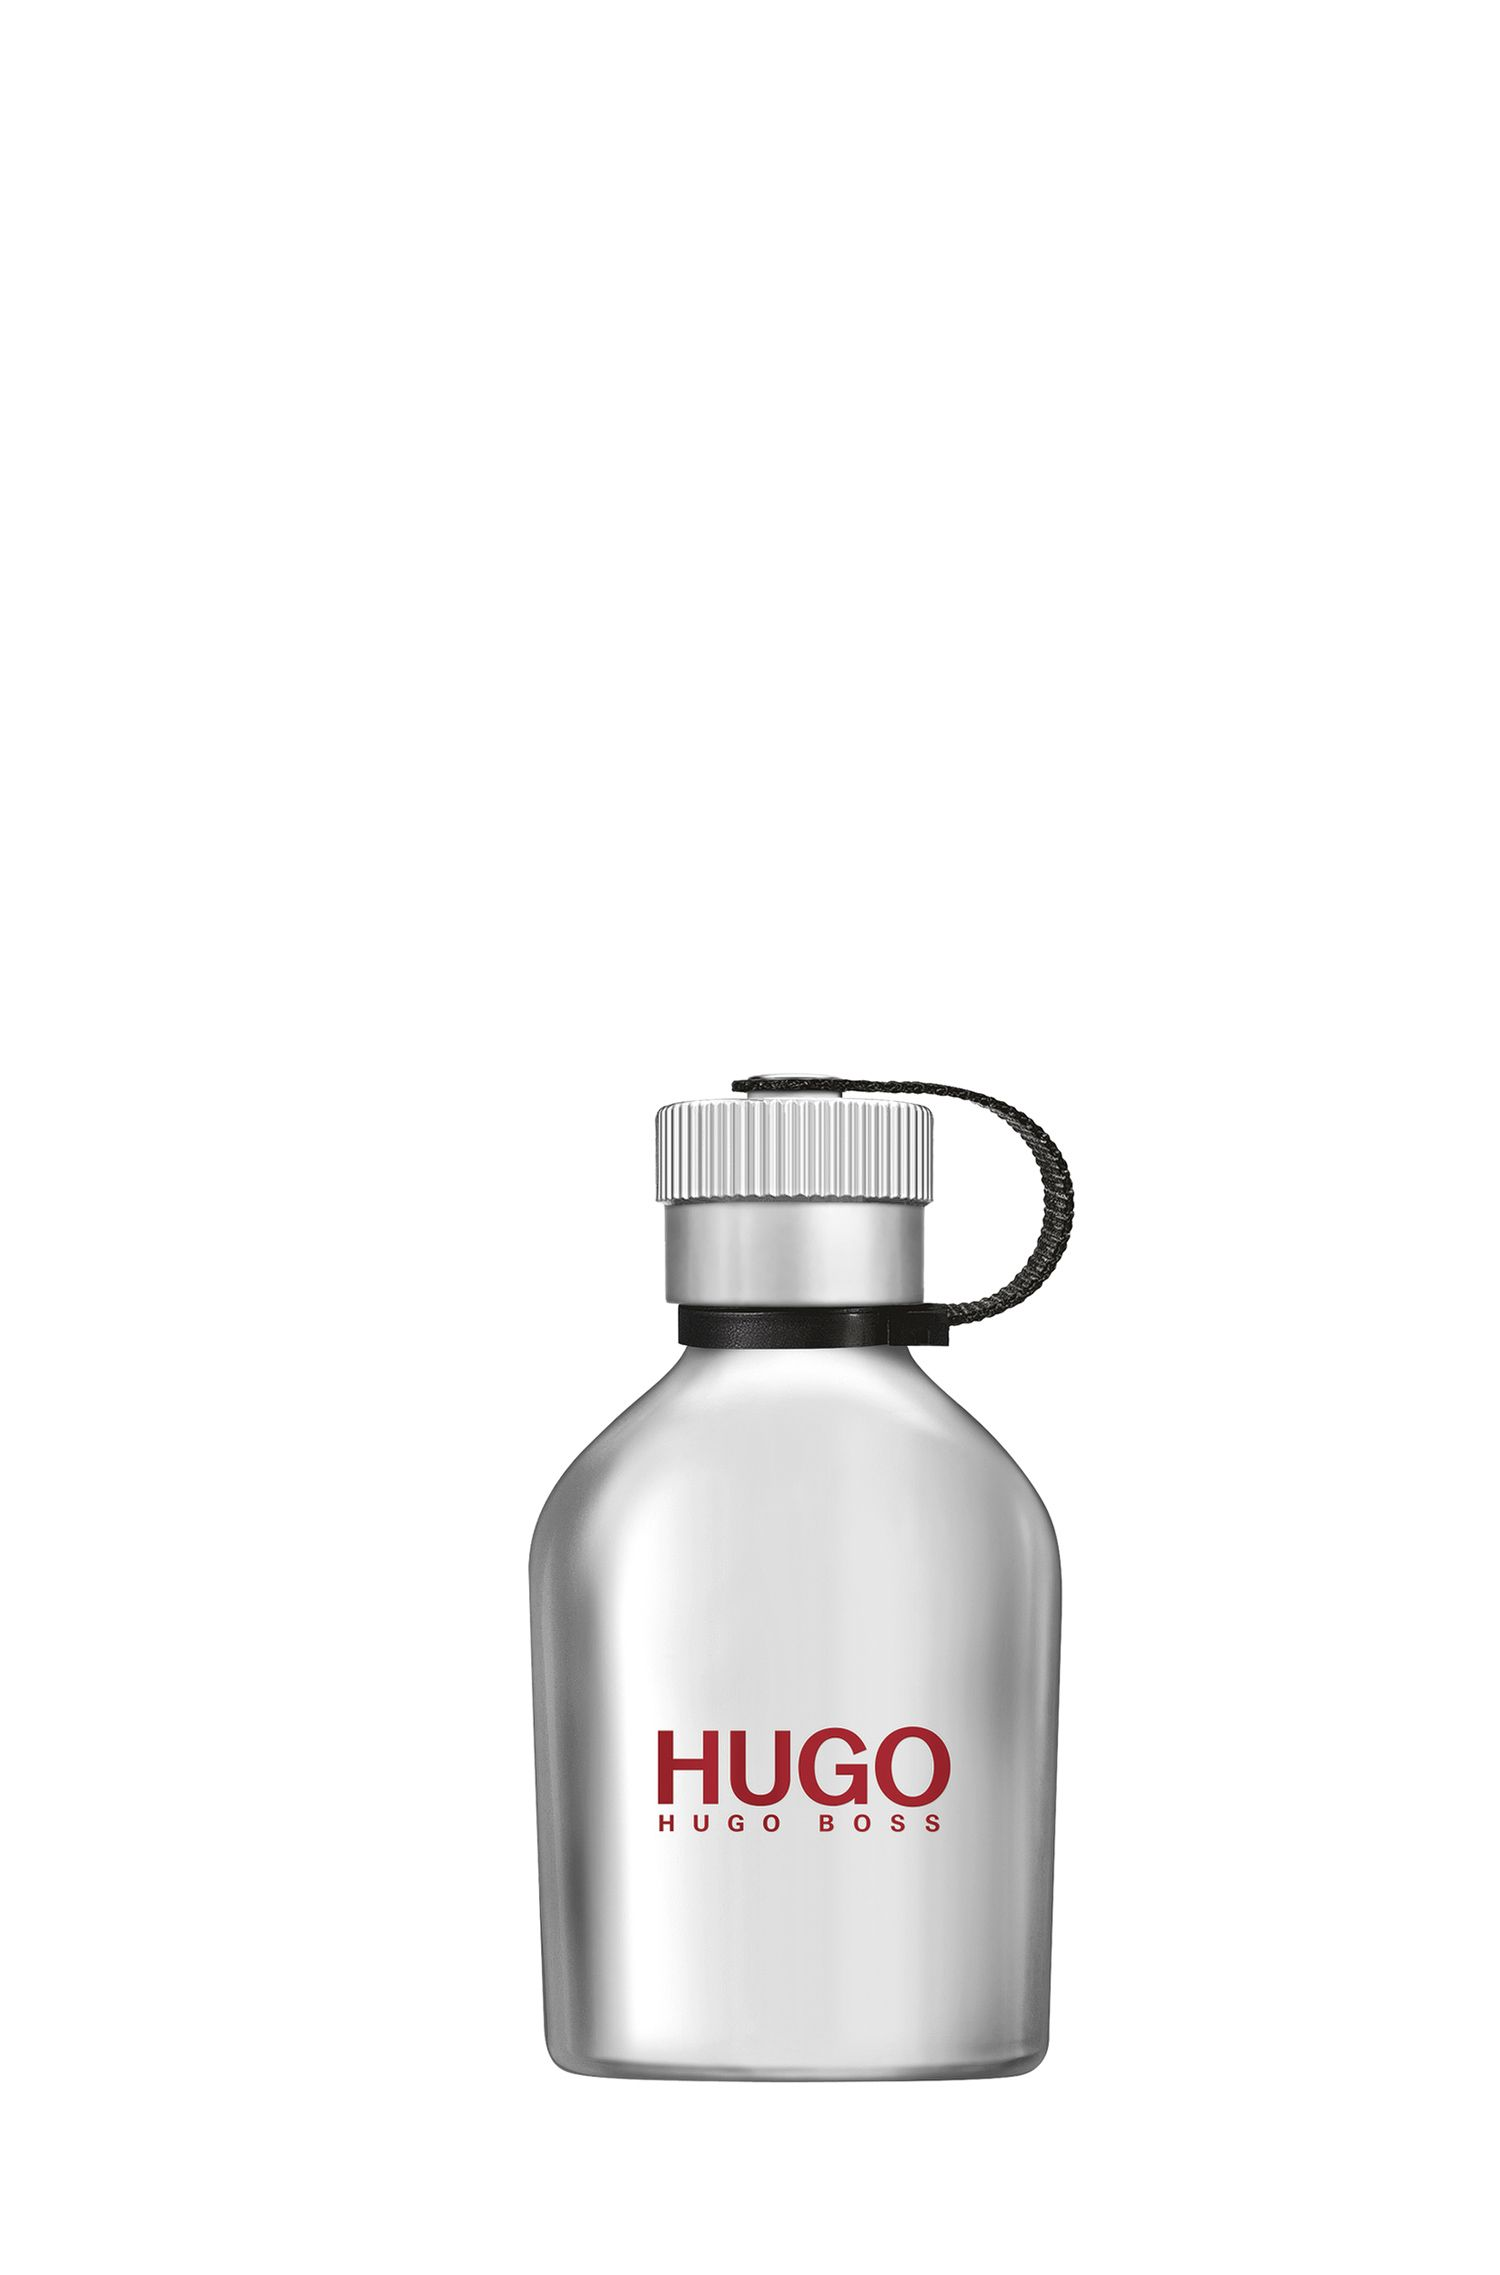 Eau de toilette HUGO Iced de 75 ml